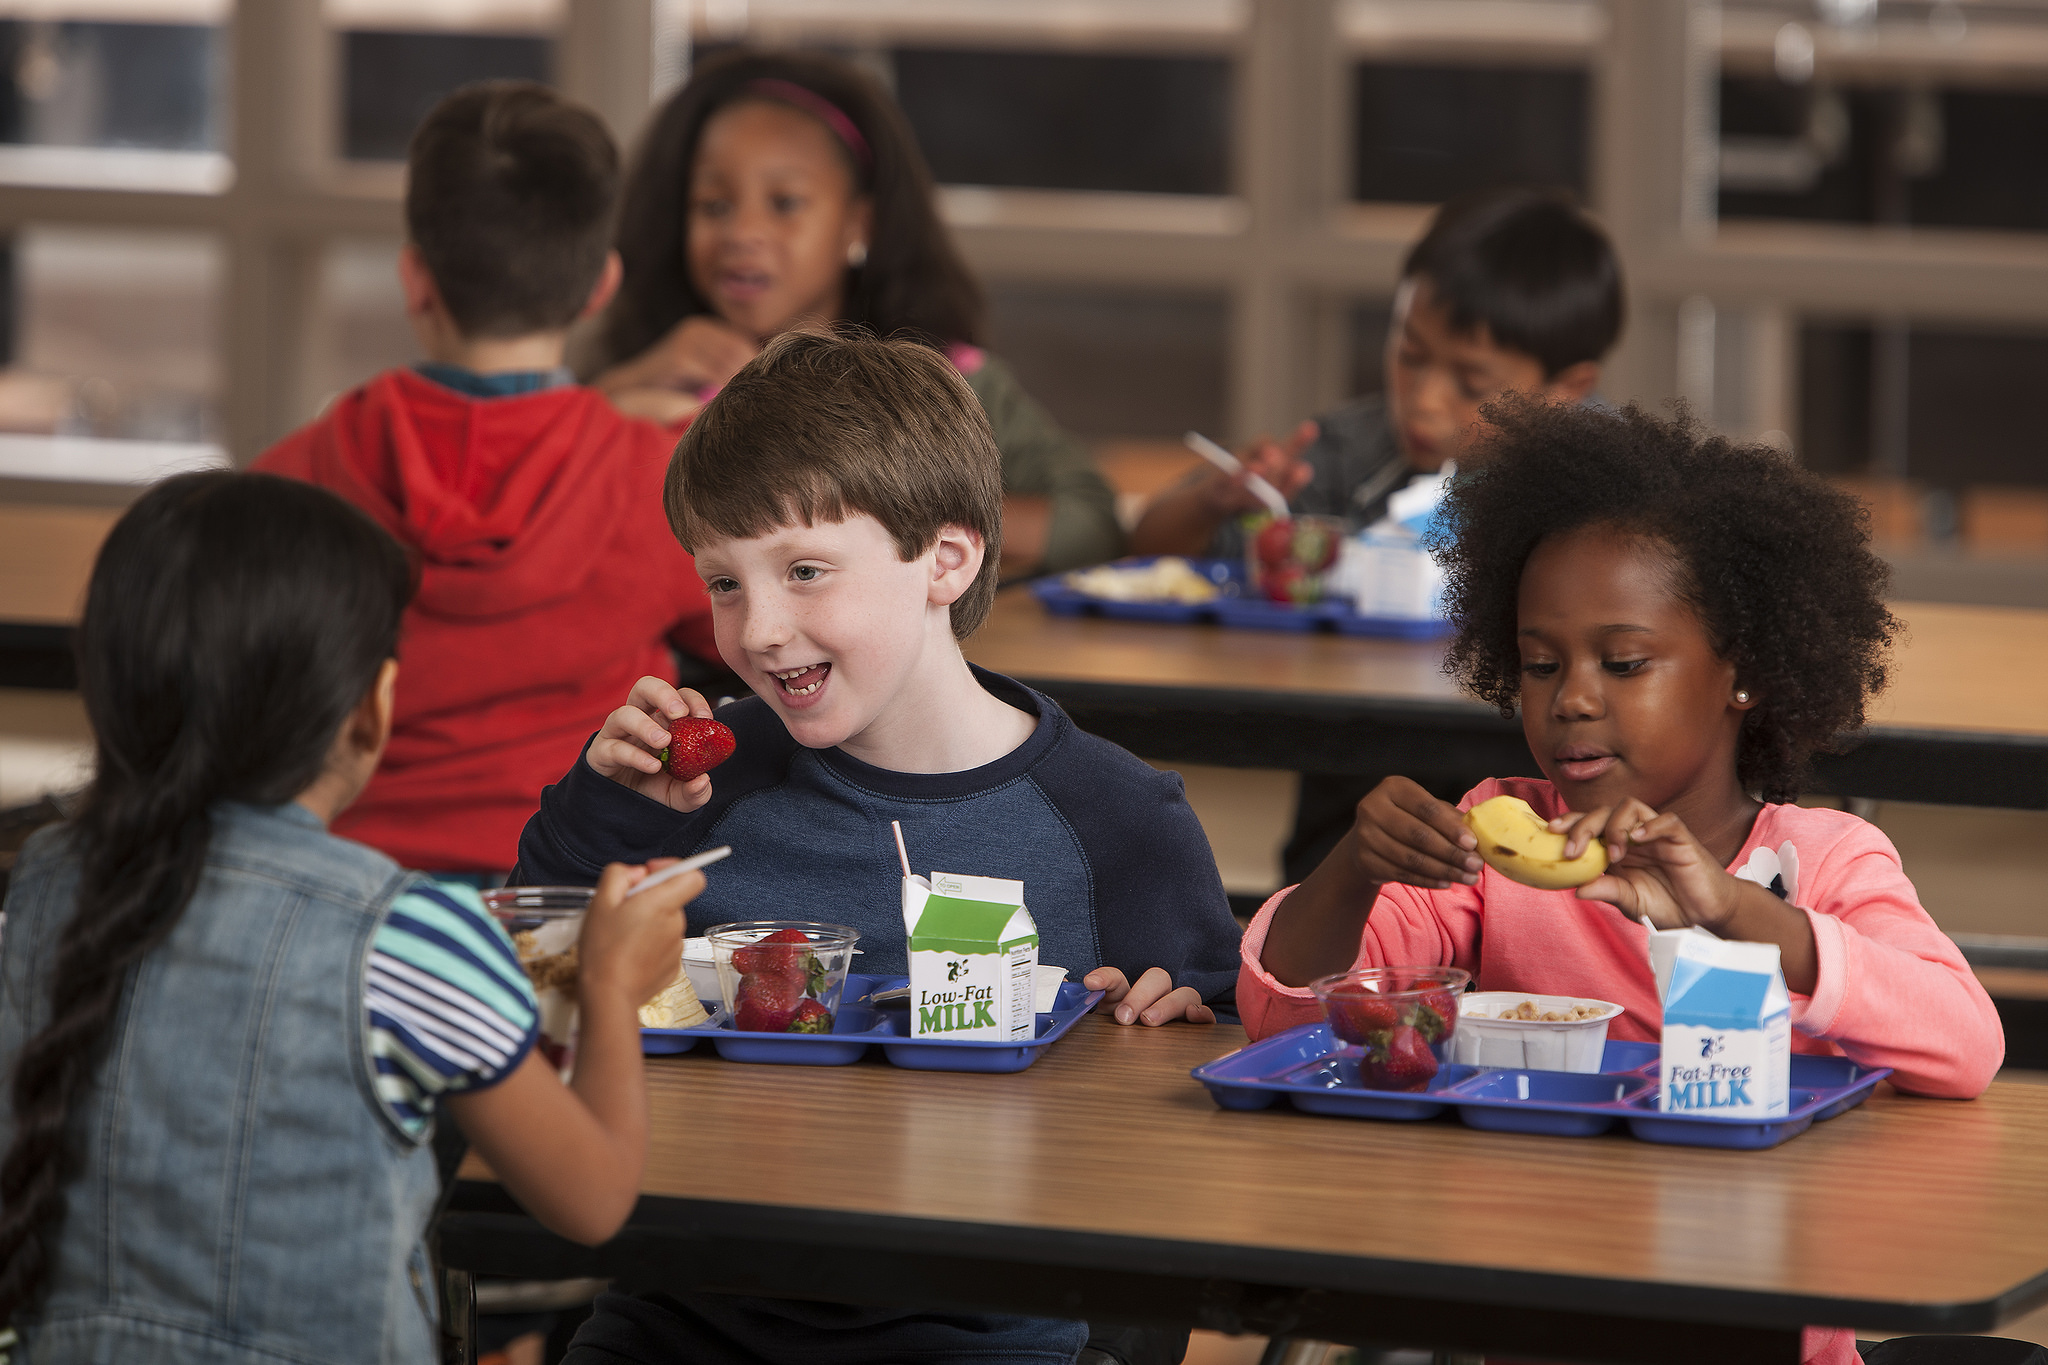 Three Ways to Get Students to Buy More School Lunches